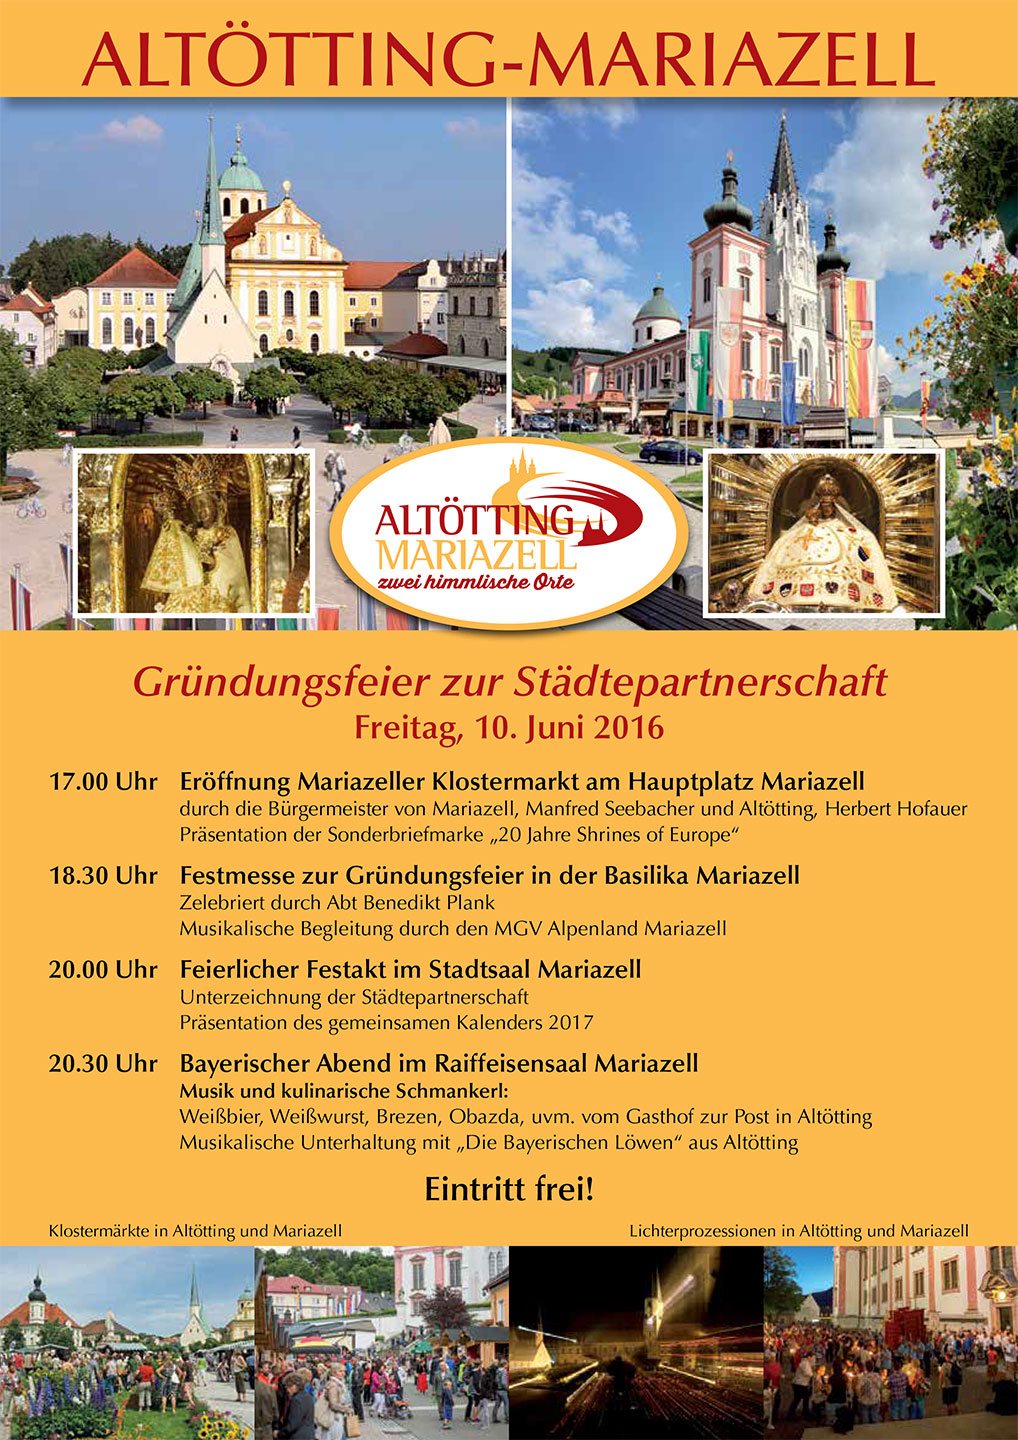 Mariazell-Altoetting-Staedtepartnerschaft_